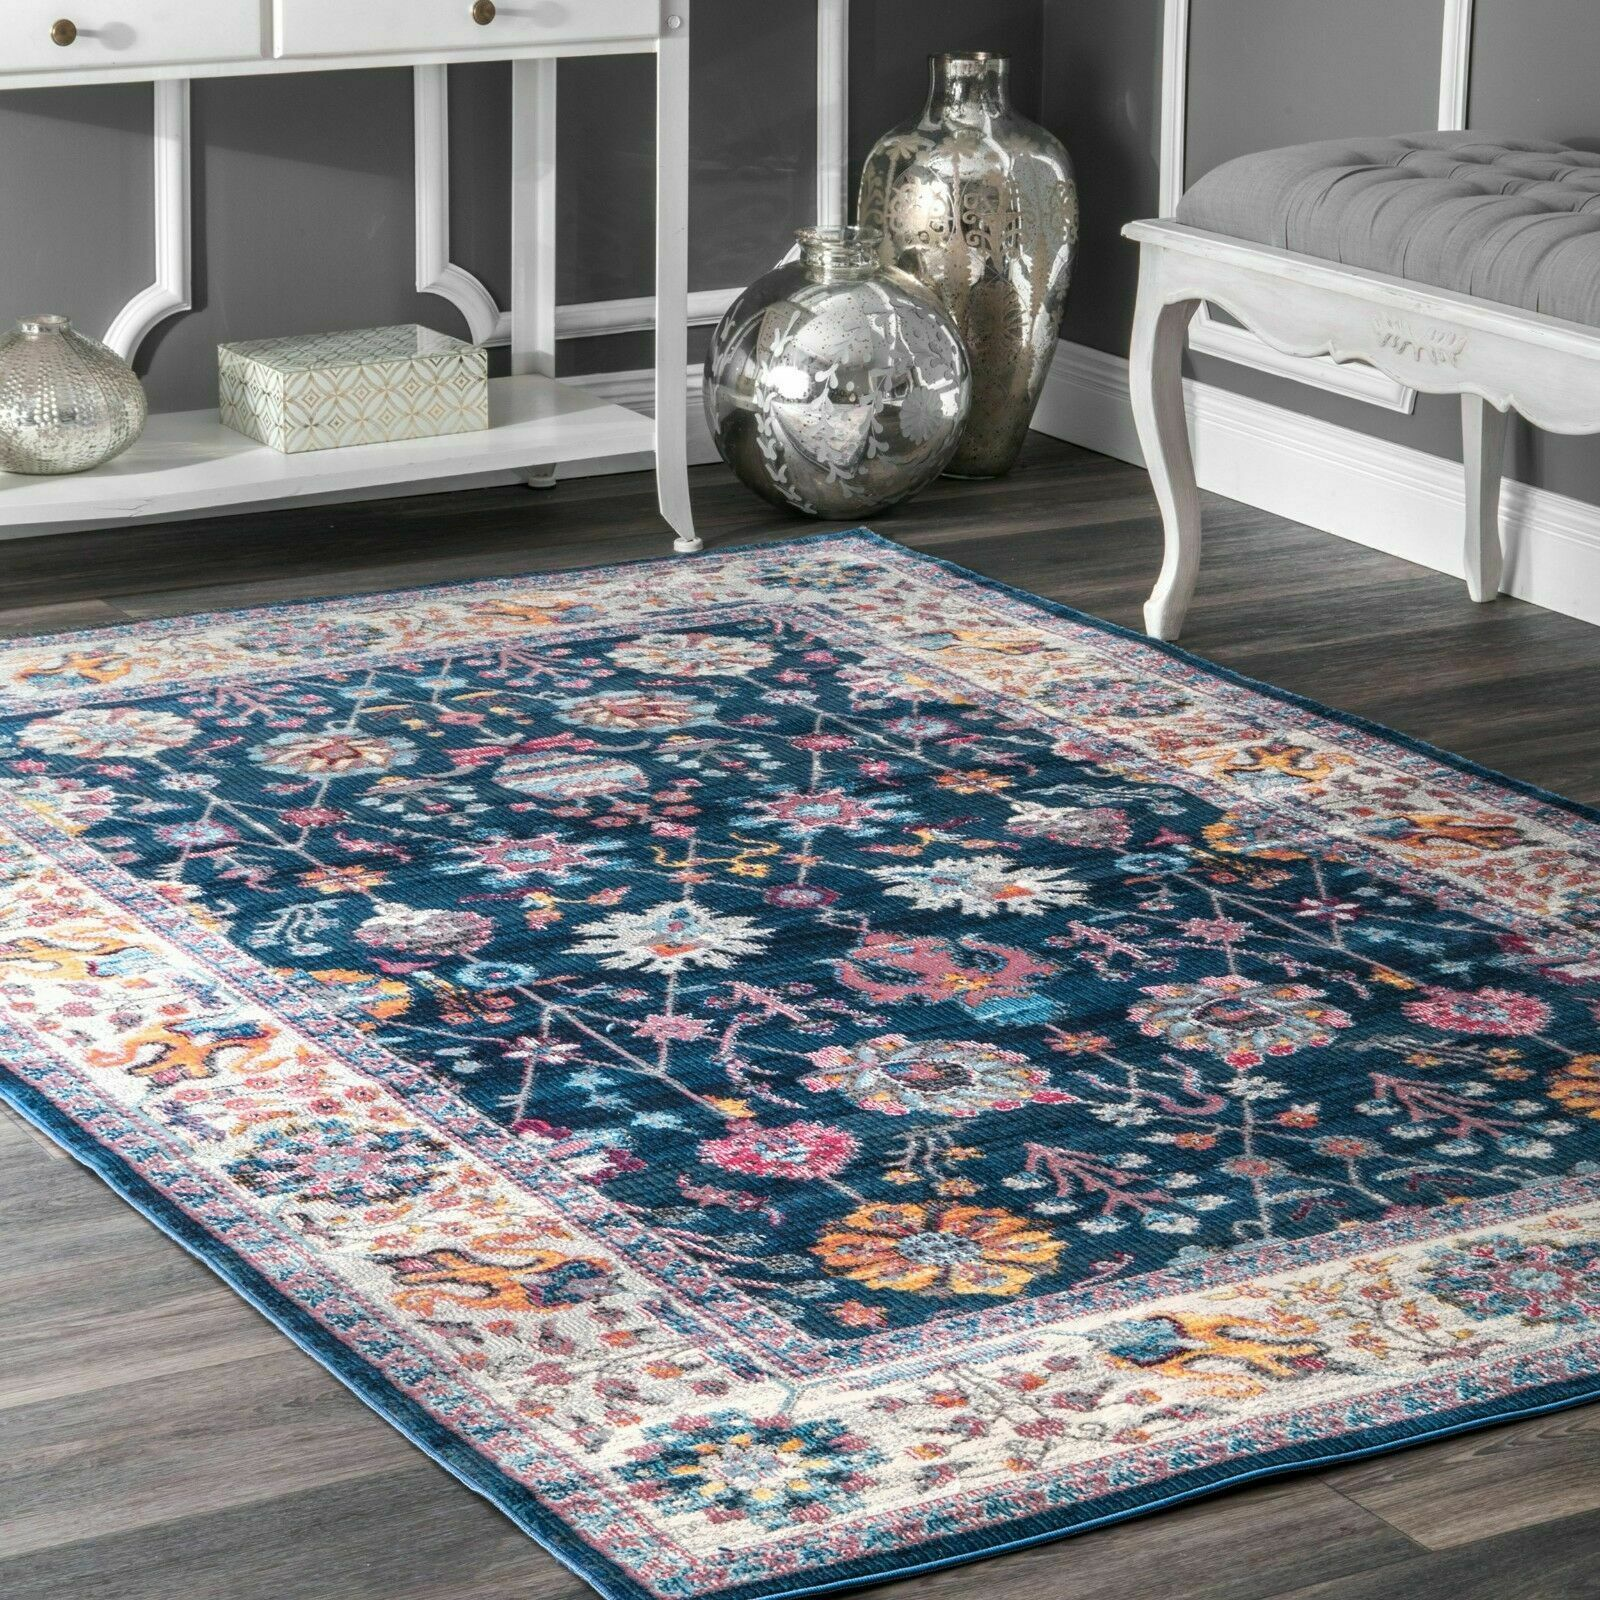 Picture of: Nuloom New Traditional Vintage Floral Area Rug In Navy Blue Purple Pink Multi For Sale Online